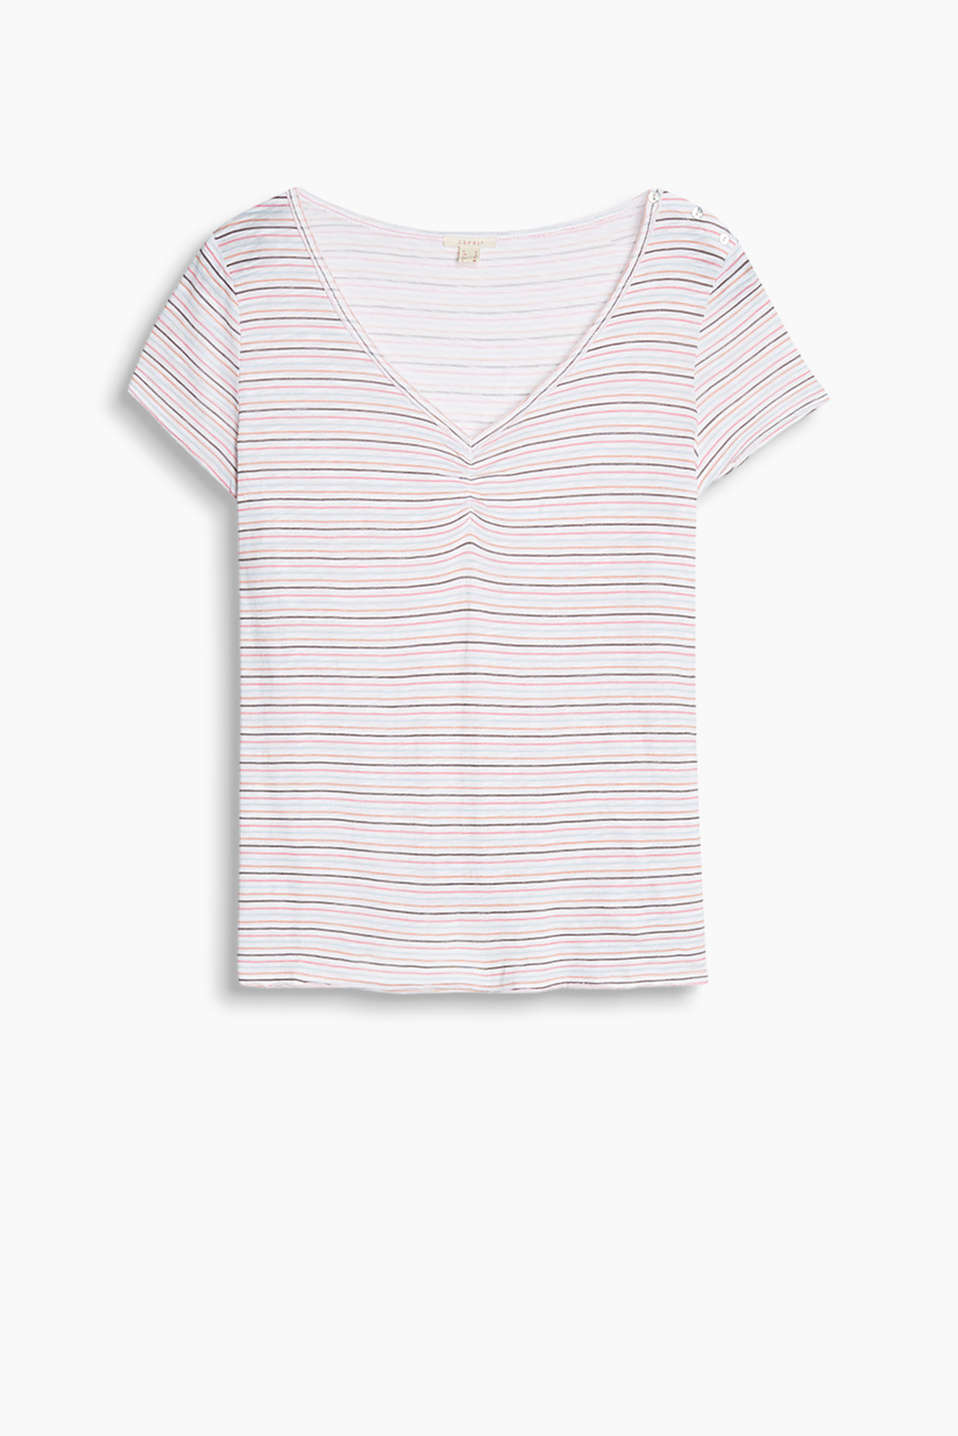 Airy slub jersey top with multicoloured stripes, decorative button placket, gathered V-neck and fringed hems